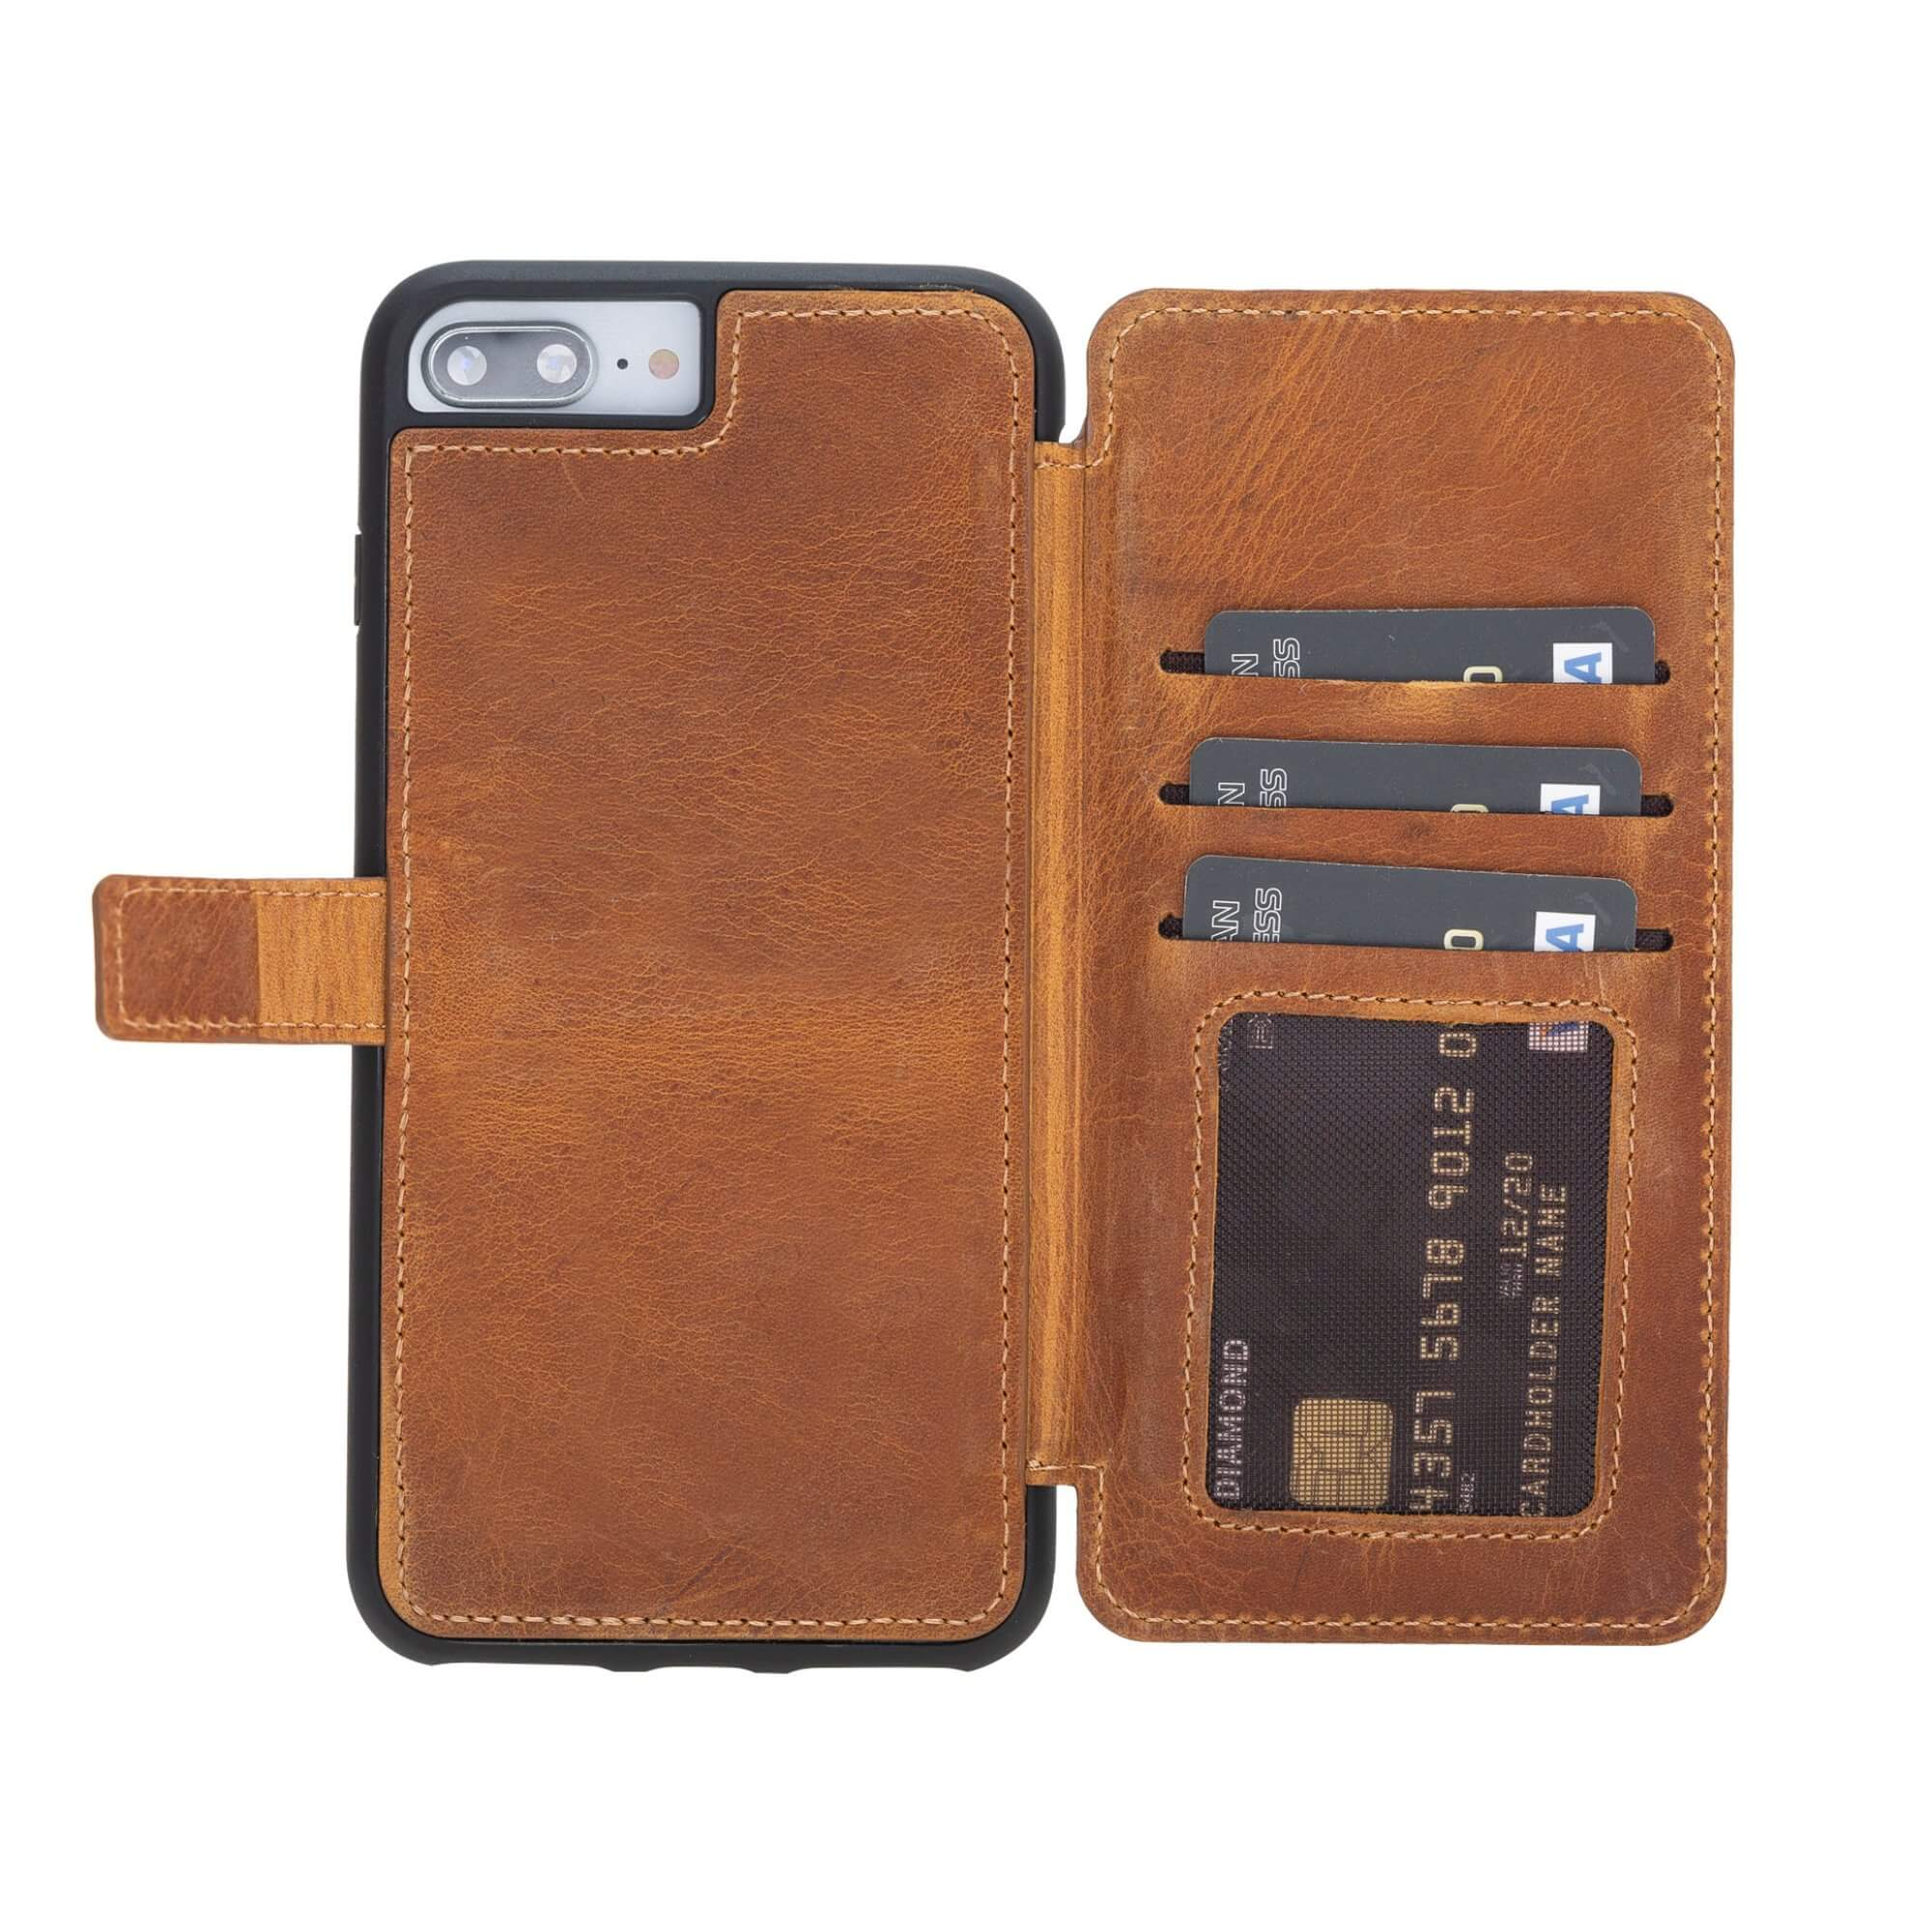 Verona RFID Blocking Leather Slim Wallet Case for iPhone 8 Plus